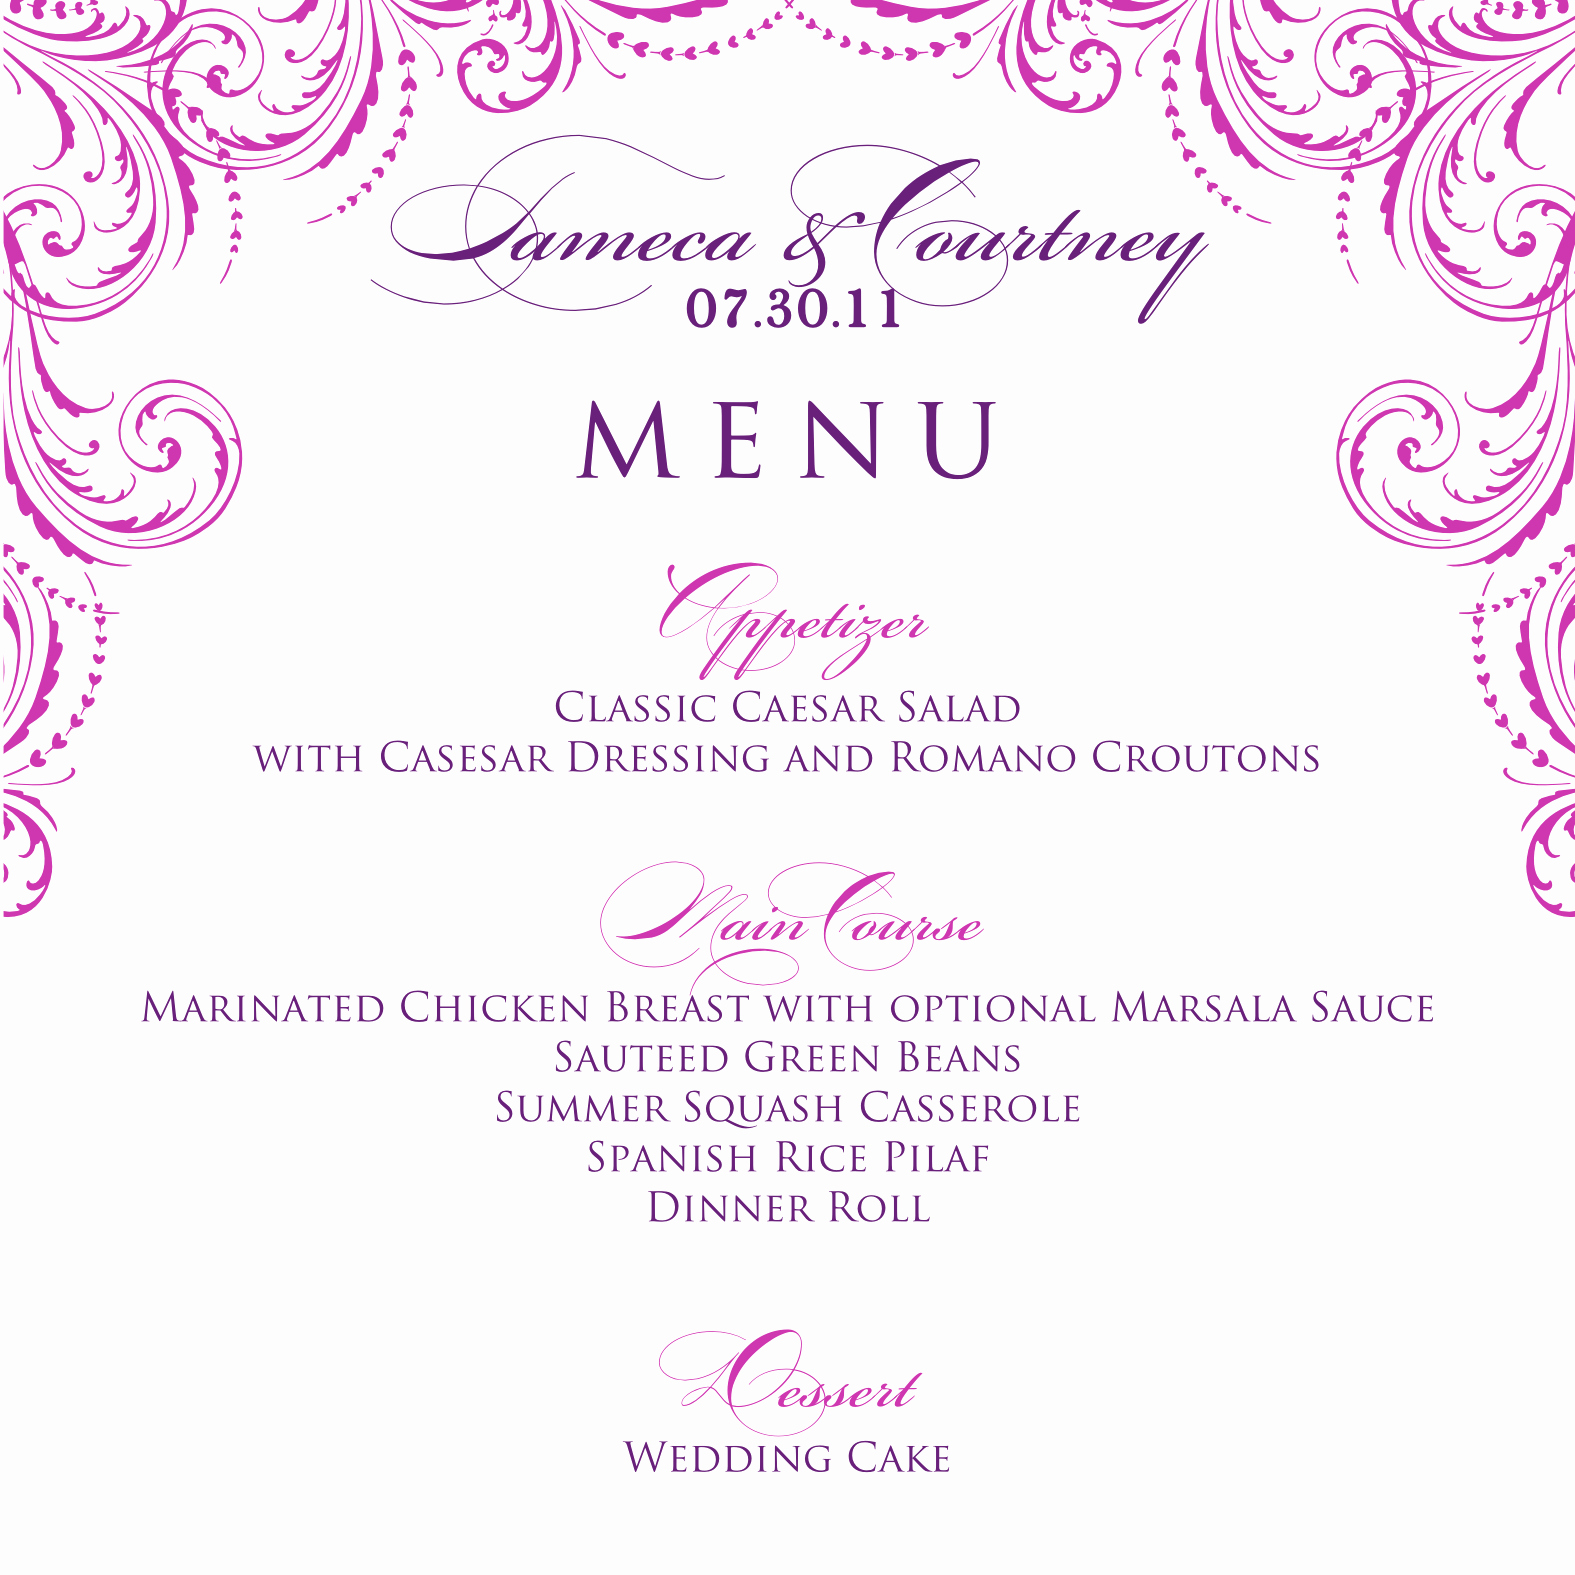 Menu Design Ideas Template Fresh Signatures by Sarah Wedding Menu and Program for Tameca